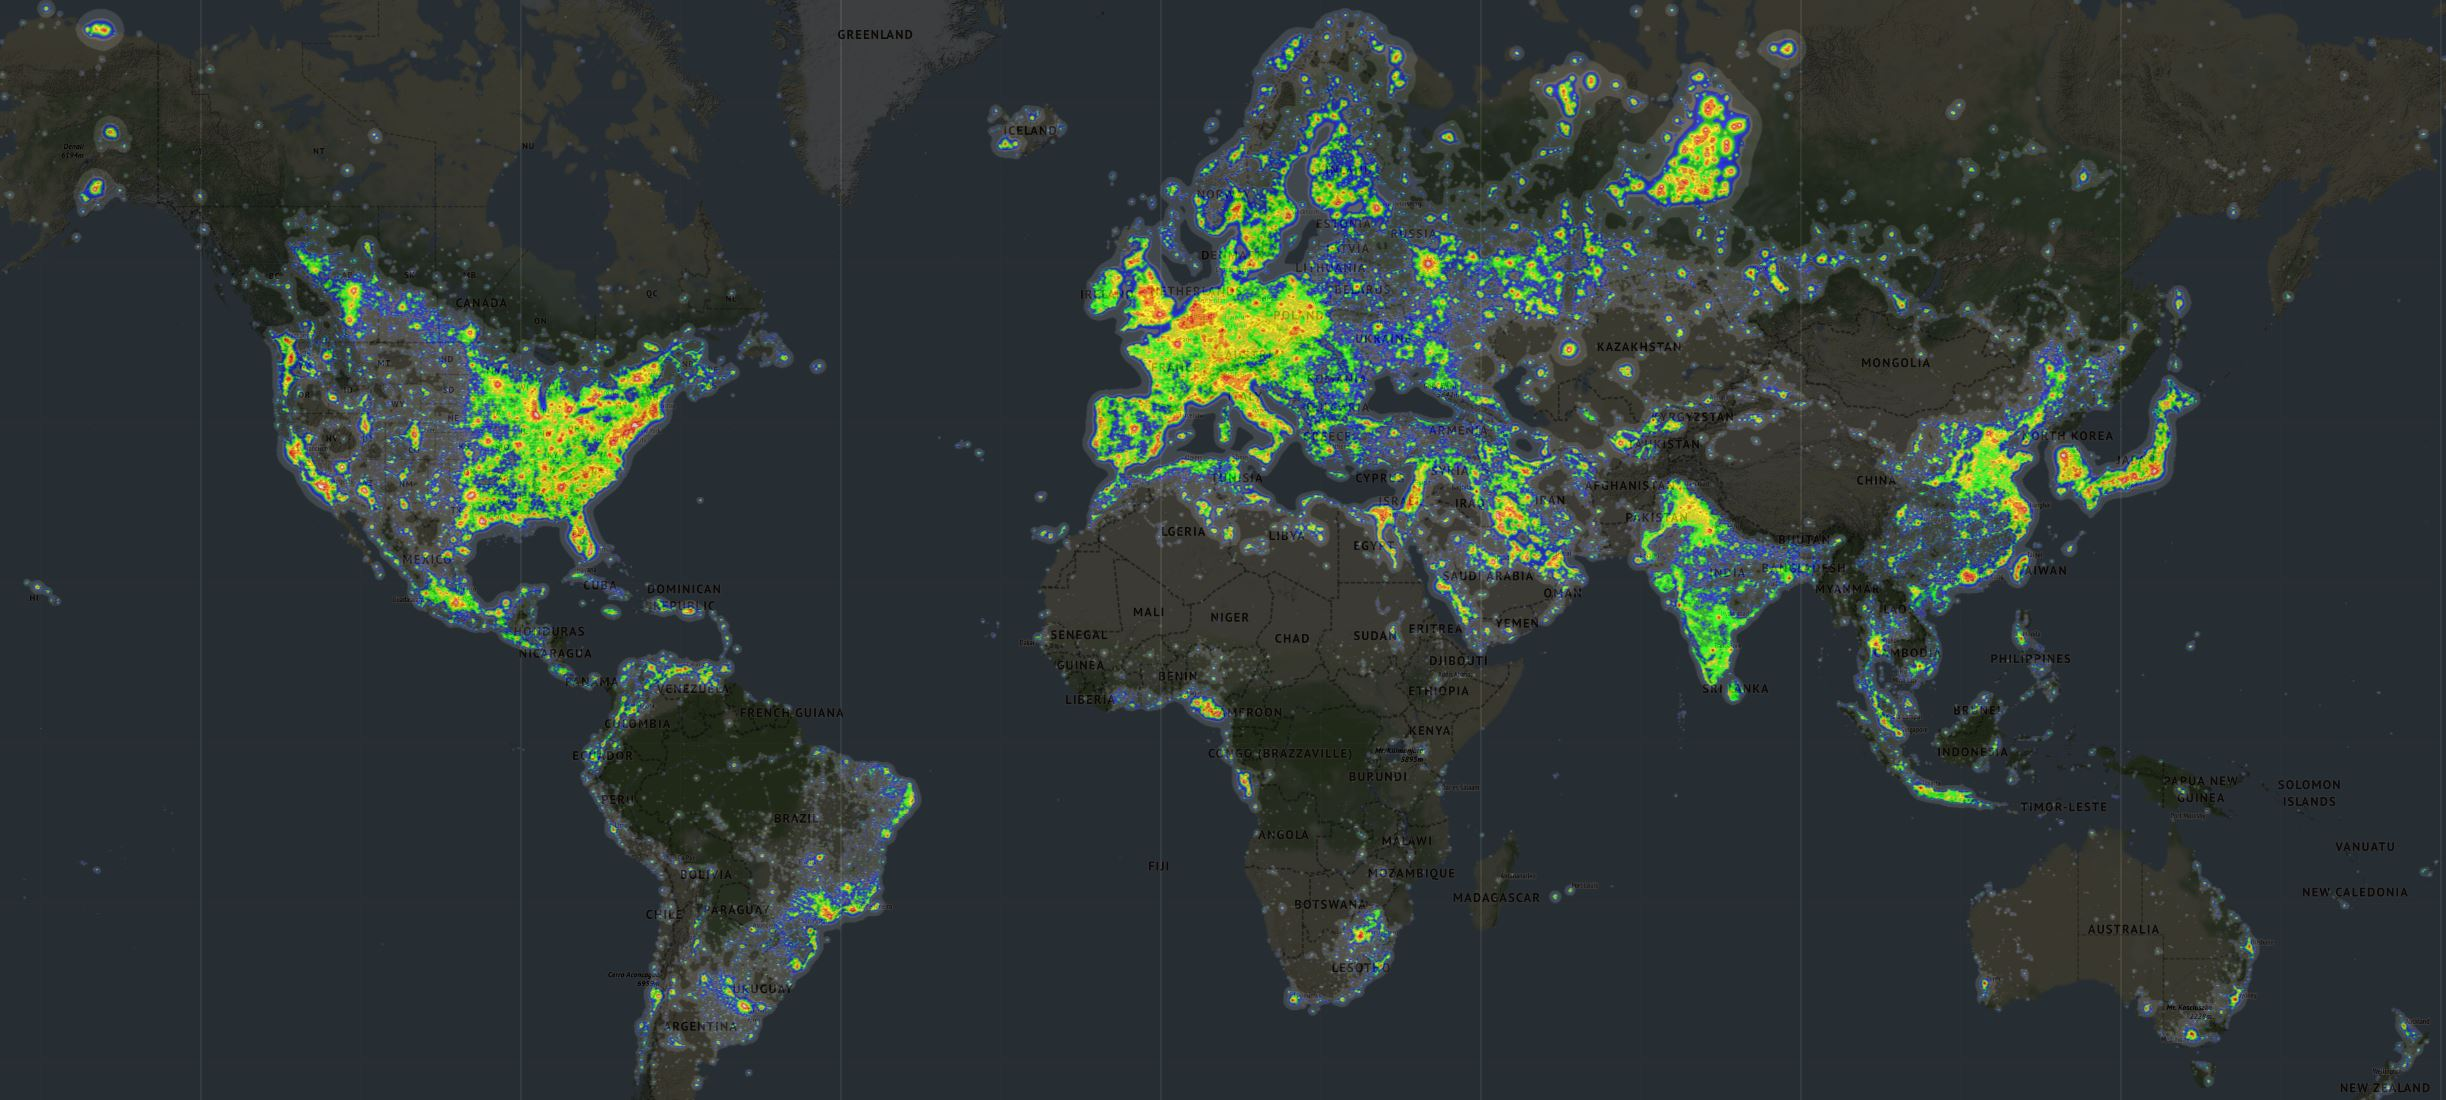 Light pollution litters the world's major cities